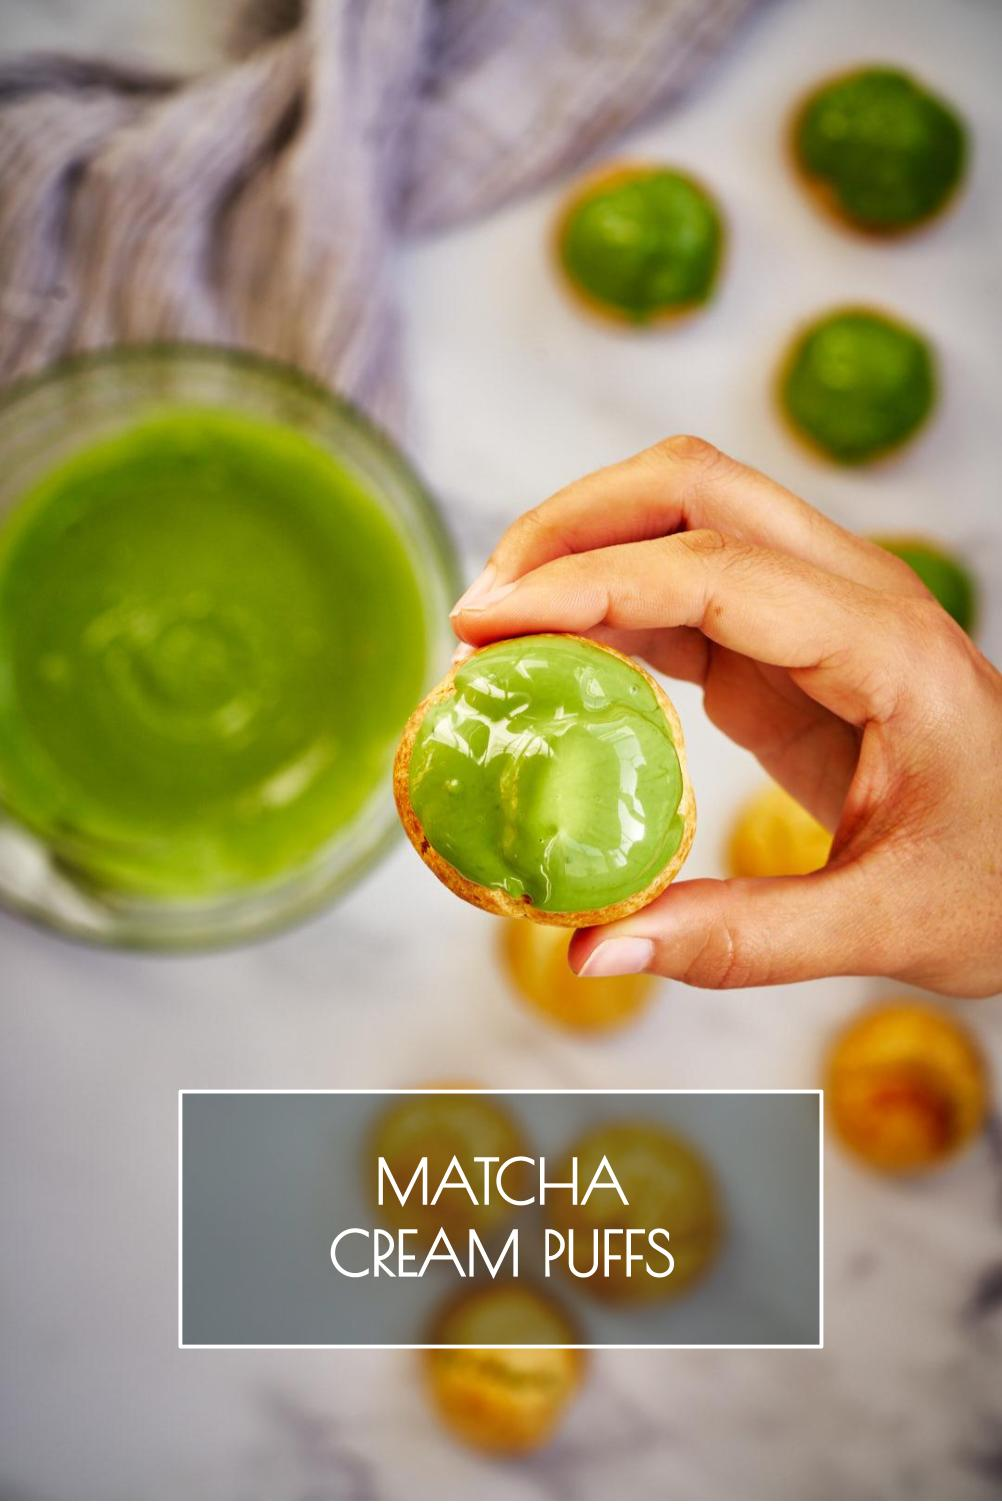 Matcha mascarpone cream puffs with step by step instructions from the choux pastry to the matcha cream filling so you can make them perfectly at home. #matcha #choux #creampuffs